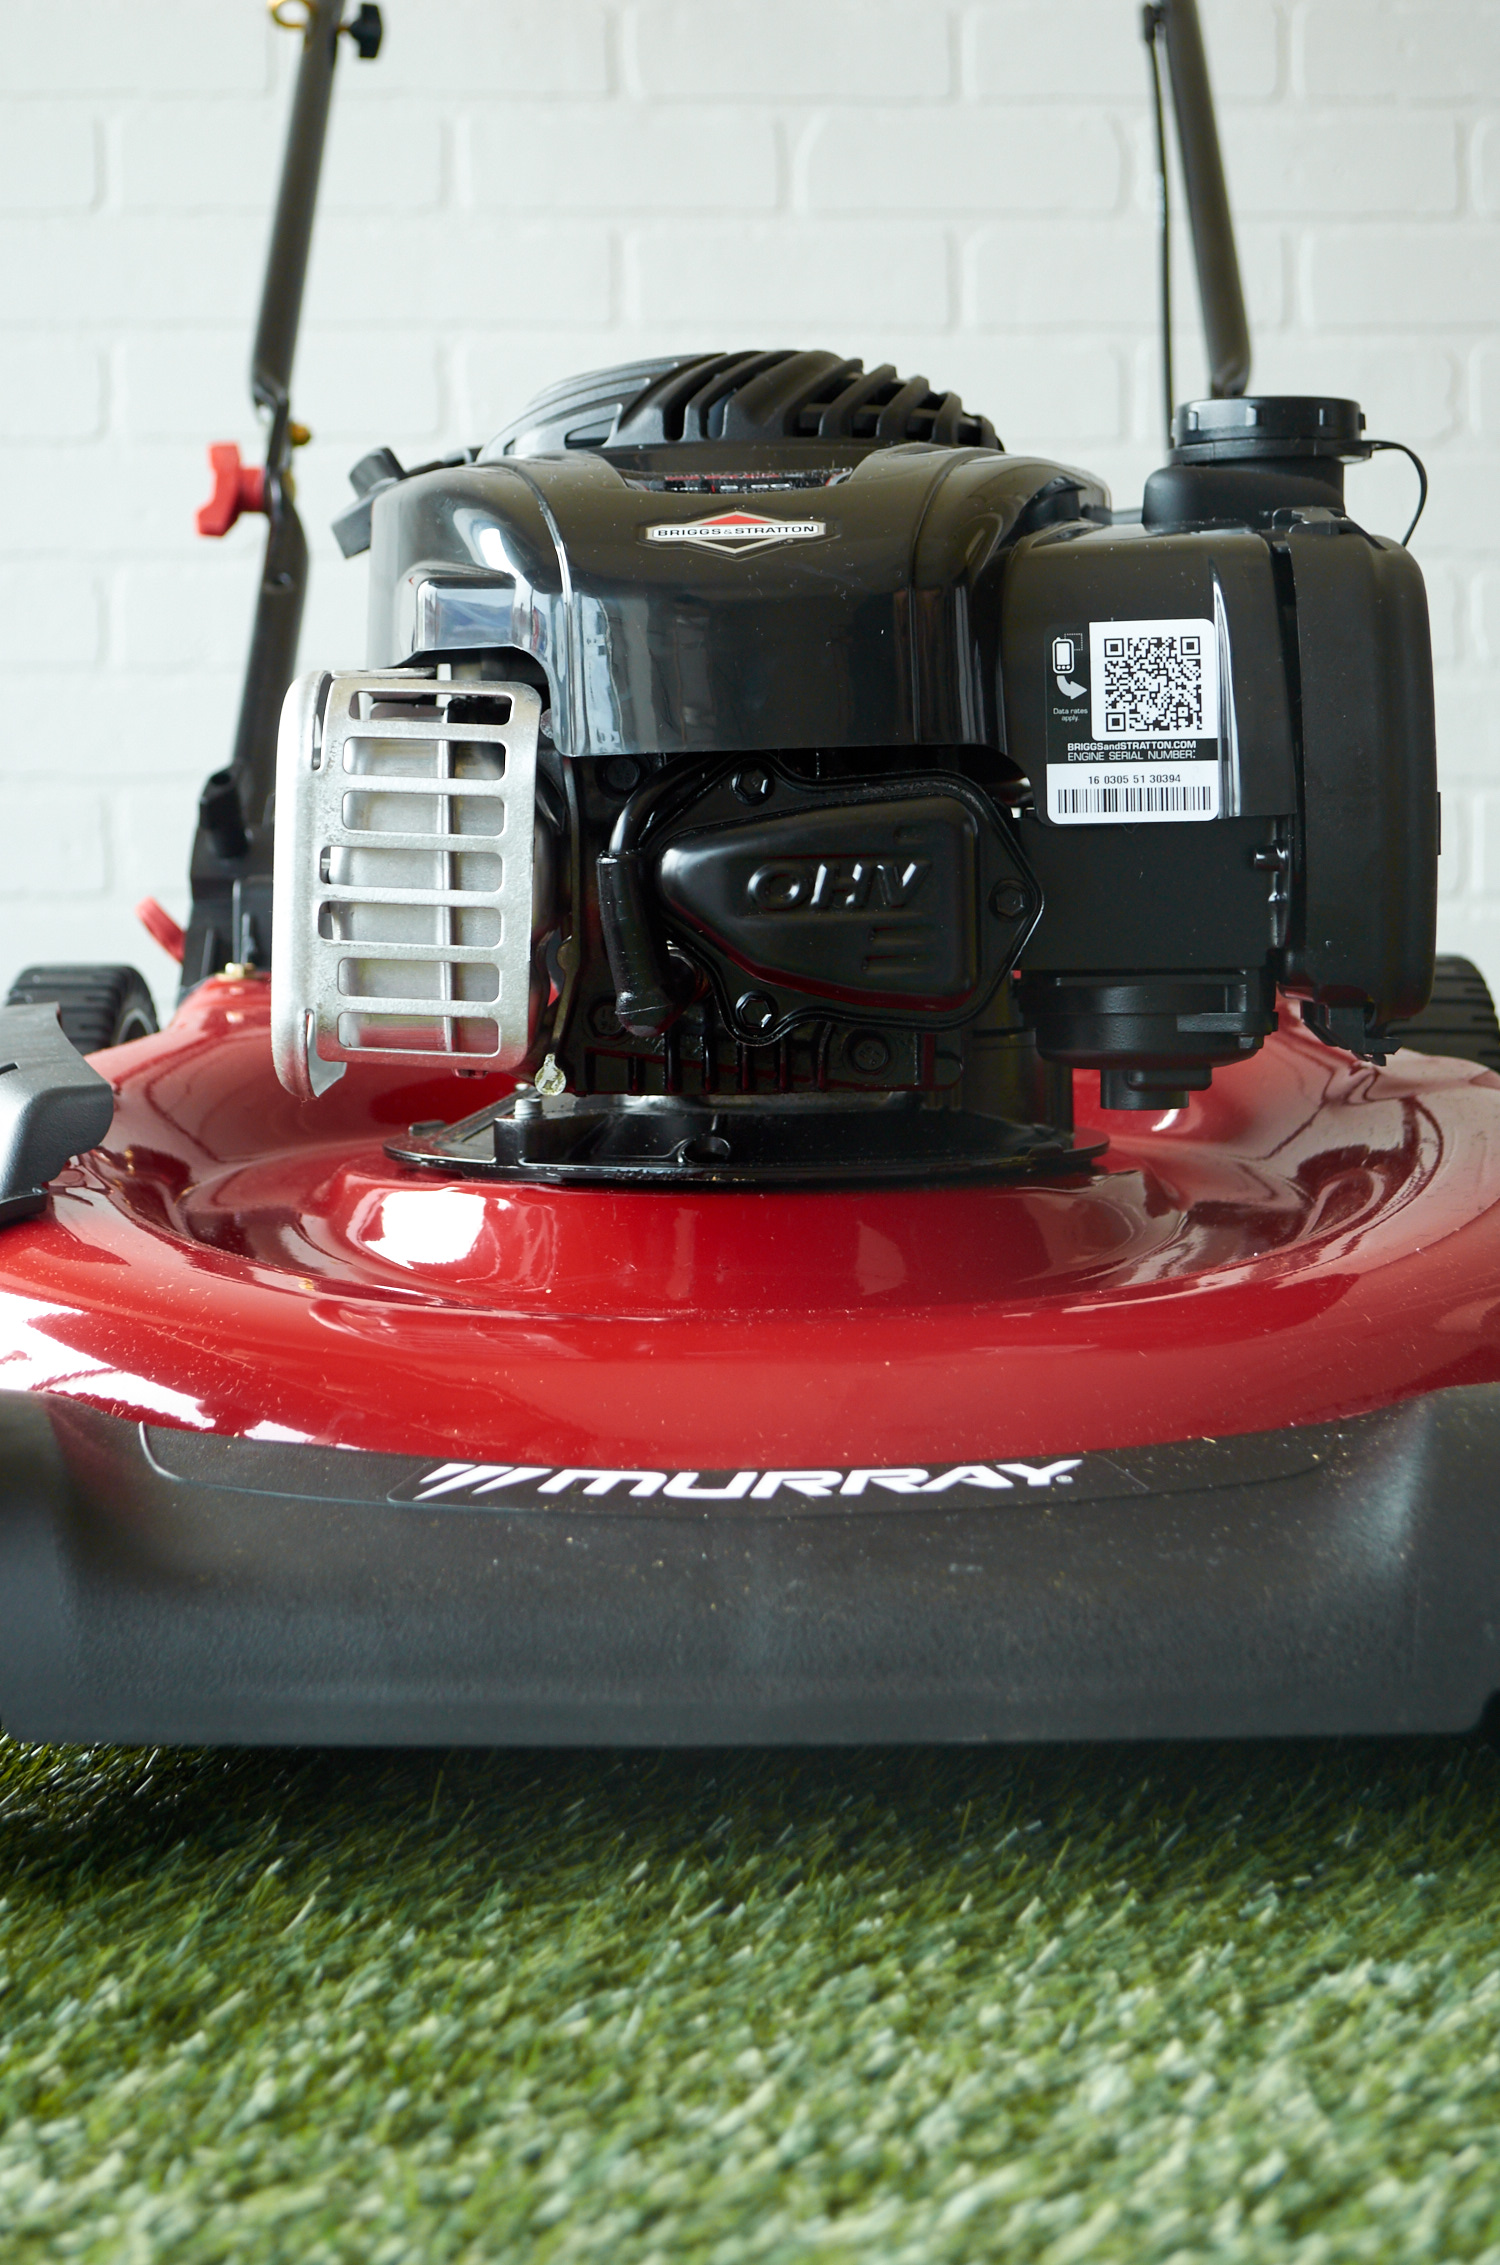 Lawn mower troubleshooting tips for spring and fall.